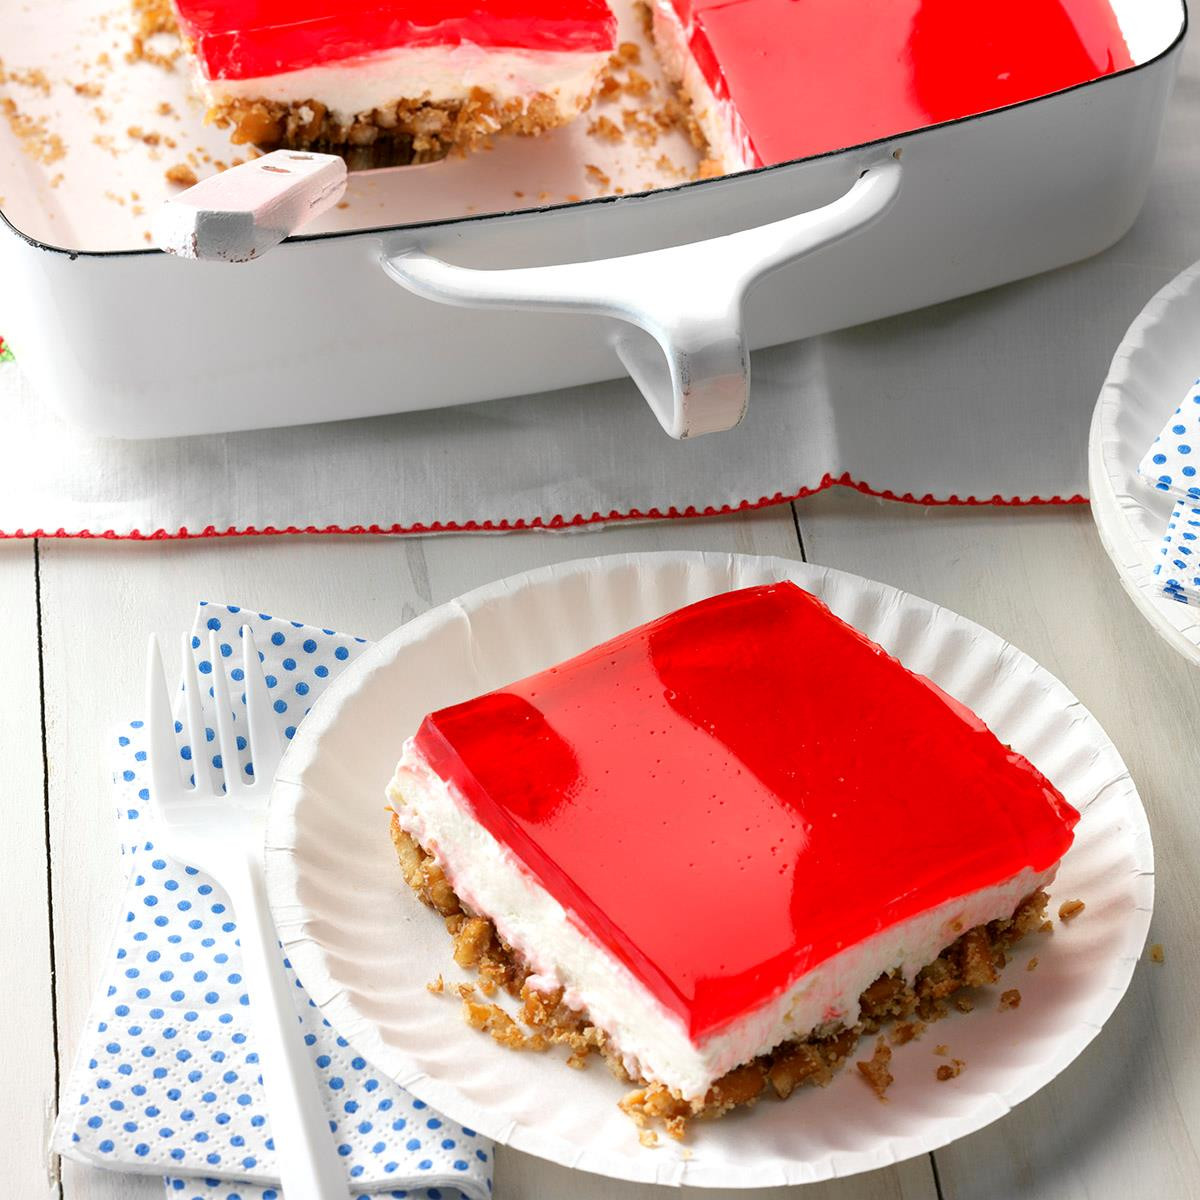 Taste Of Home Strawberry Pretzel Dessert  Pretzel Jell O Dessert Recipe